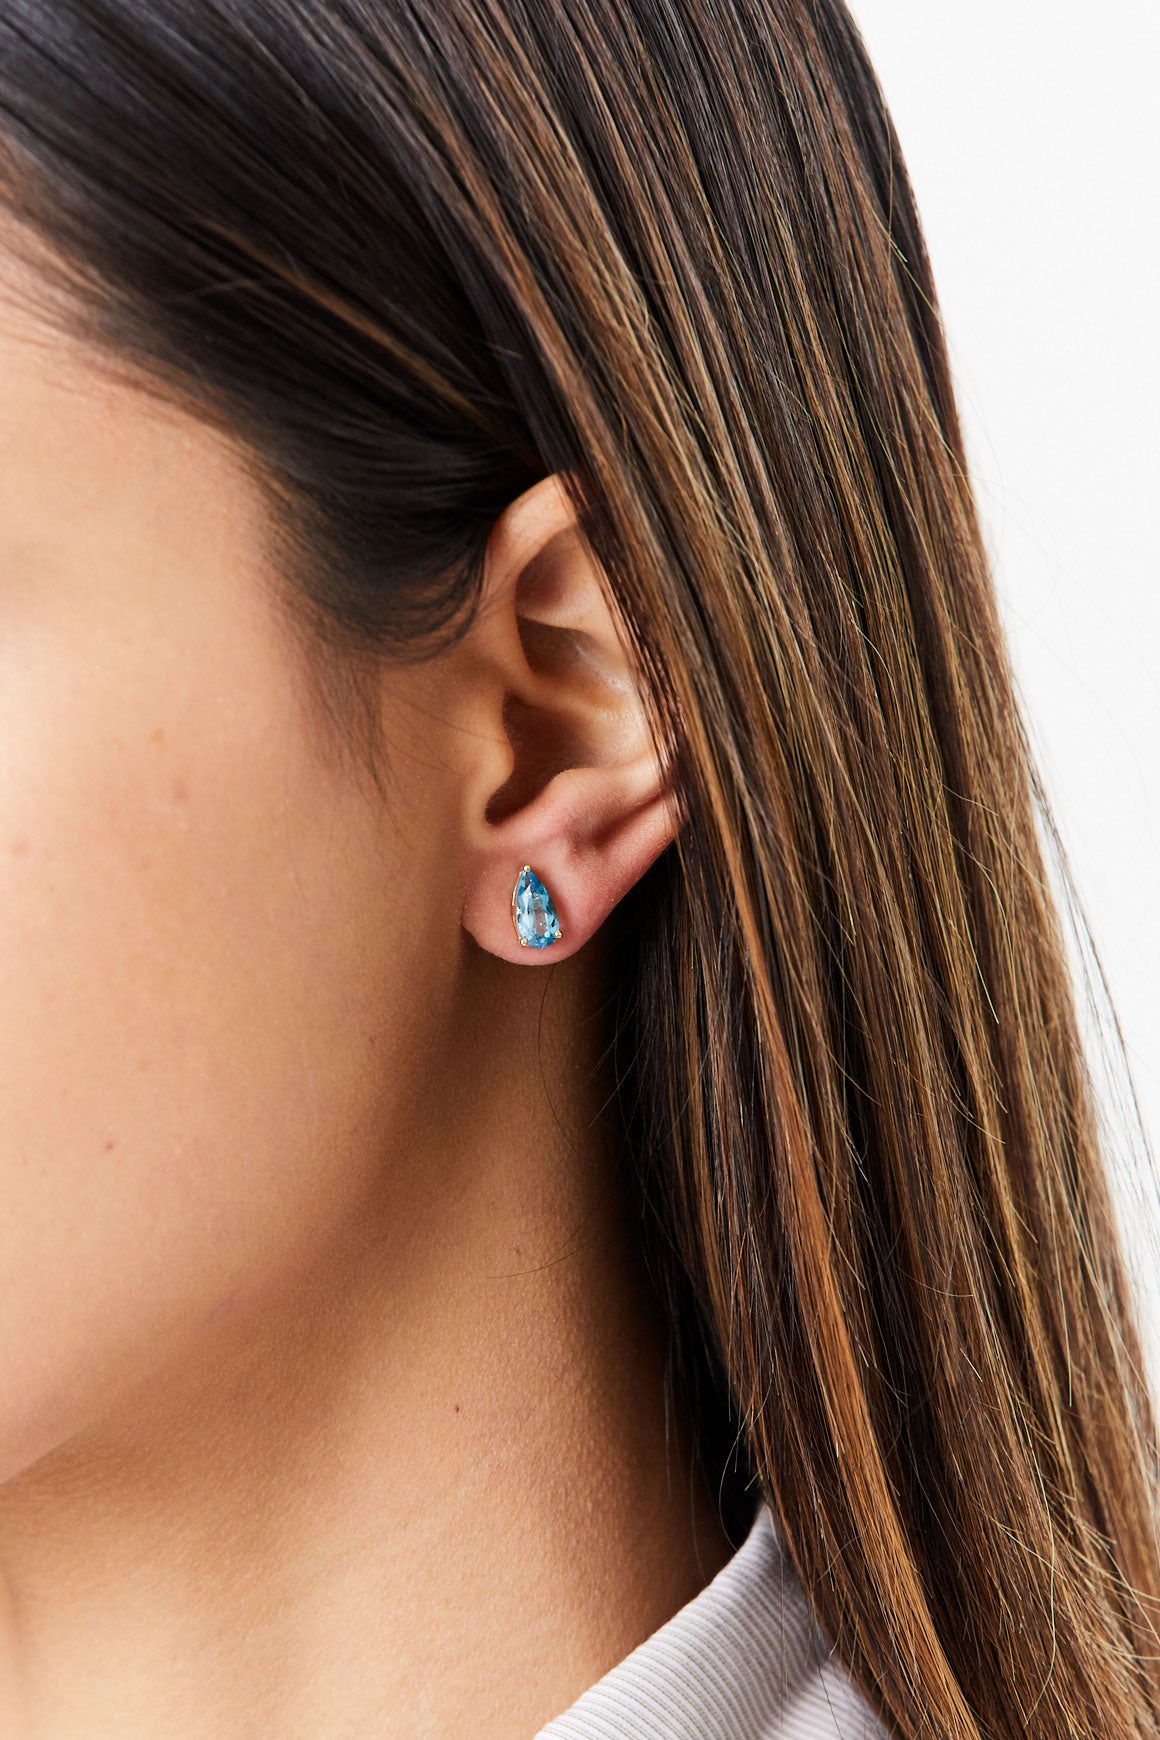 SUZANNE KALAN - Simple Pear Stud, Blue Topaz